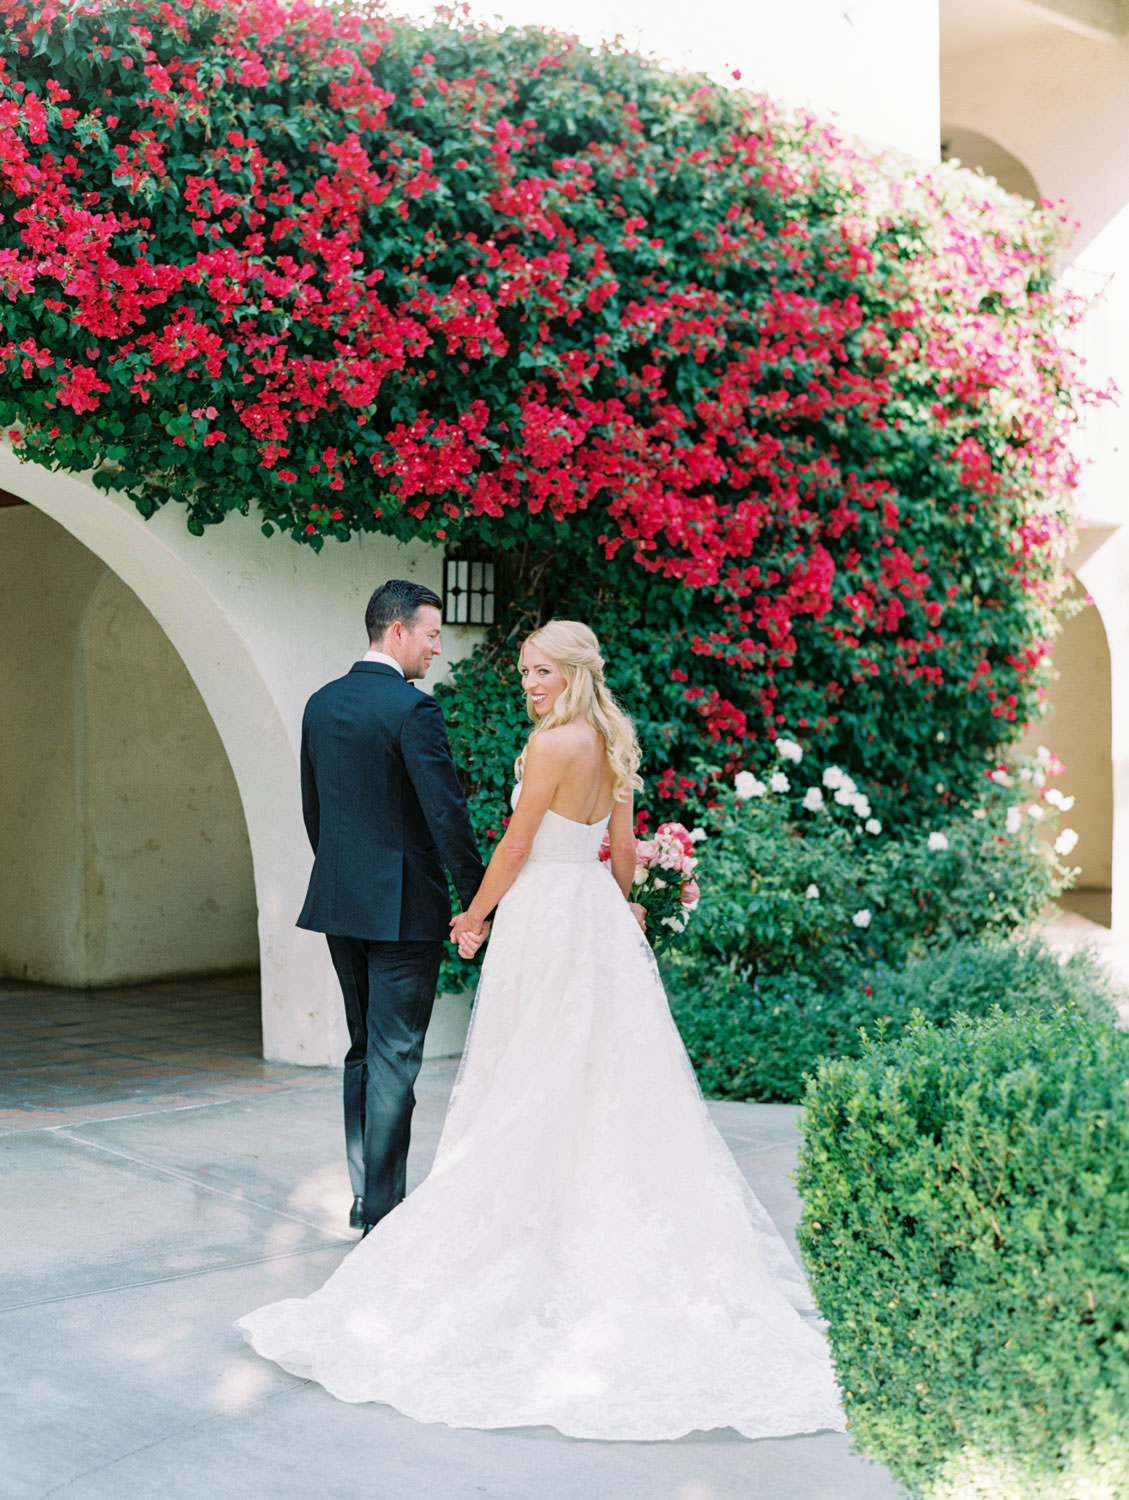 Bride and groom walking together. Bride in lace Watters sweetheart gown with large bridal bouquet of pink tones with peonies and roses. Groom in classic black tuxedo with single white rose for boutonniere. Miramonte Resort wedding. Film photography by Cavin Elizabeth.